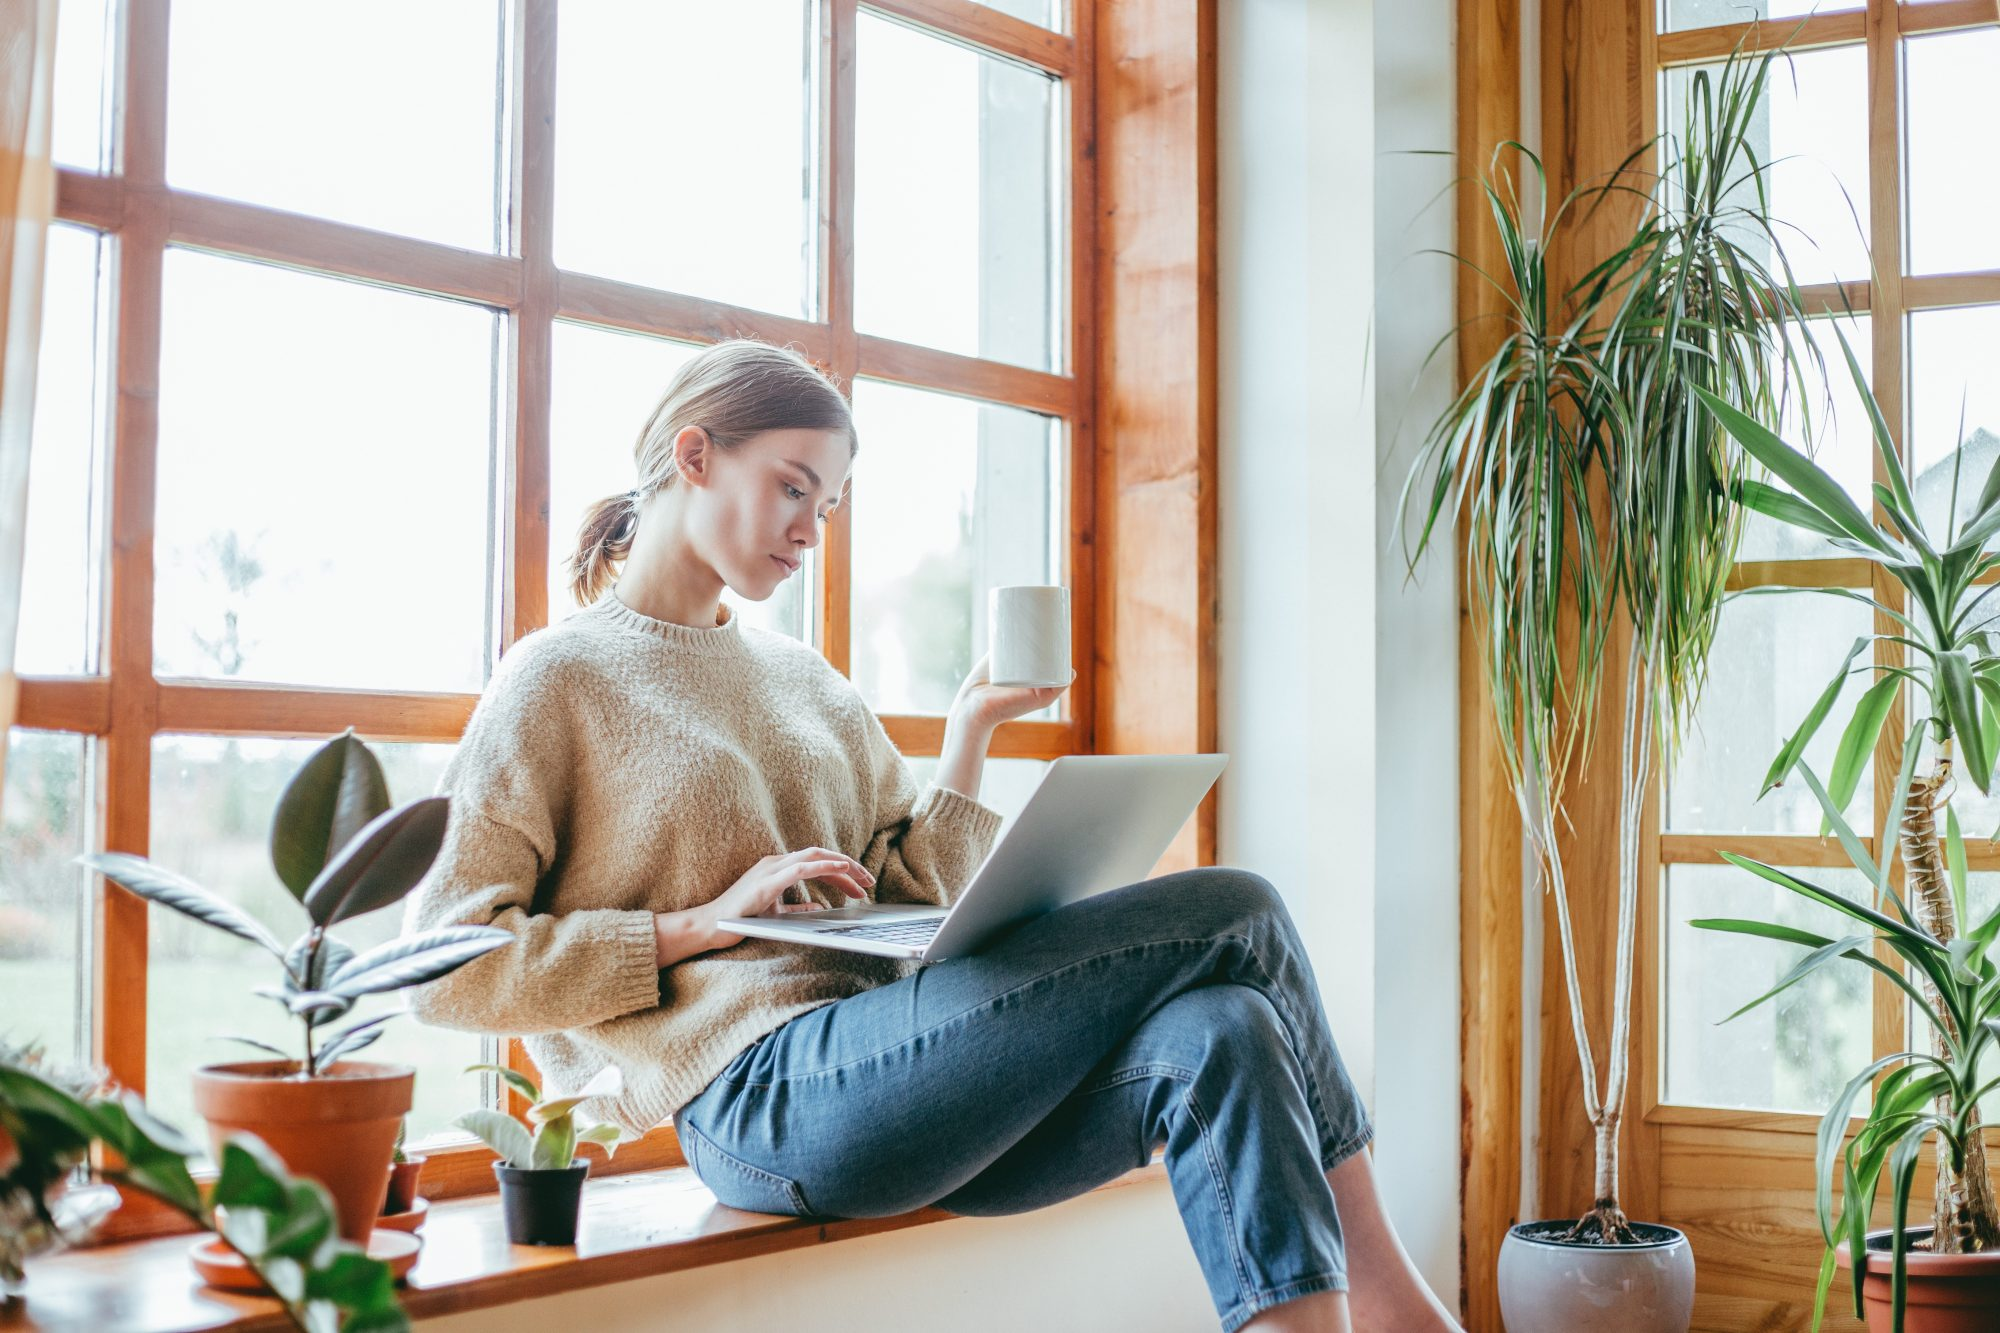 Candid portrait of woman drinking coffee with houseplants around